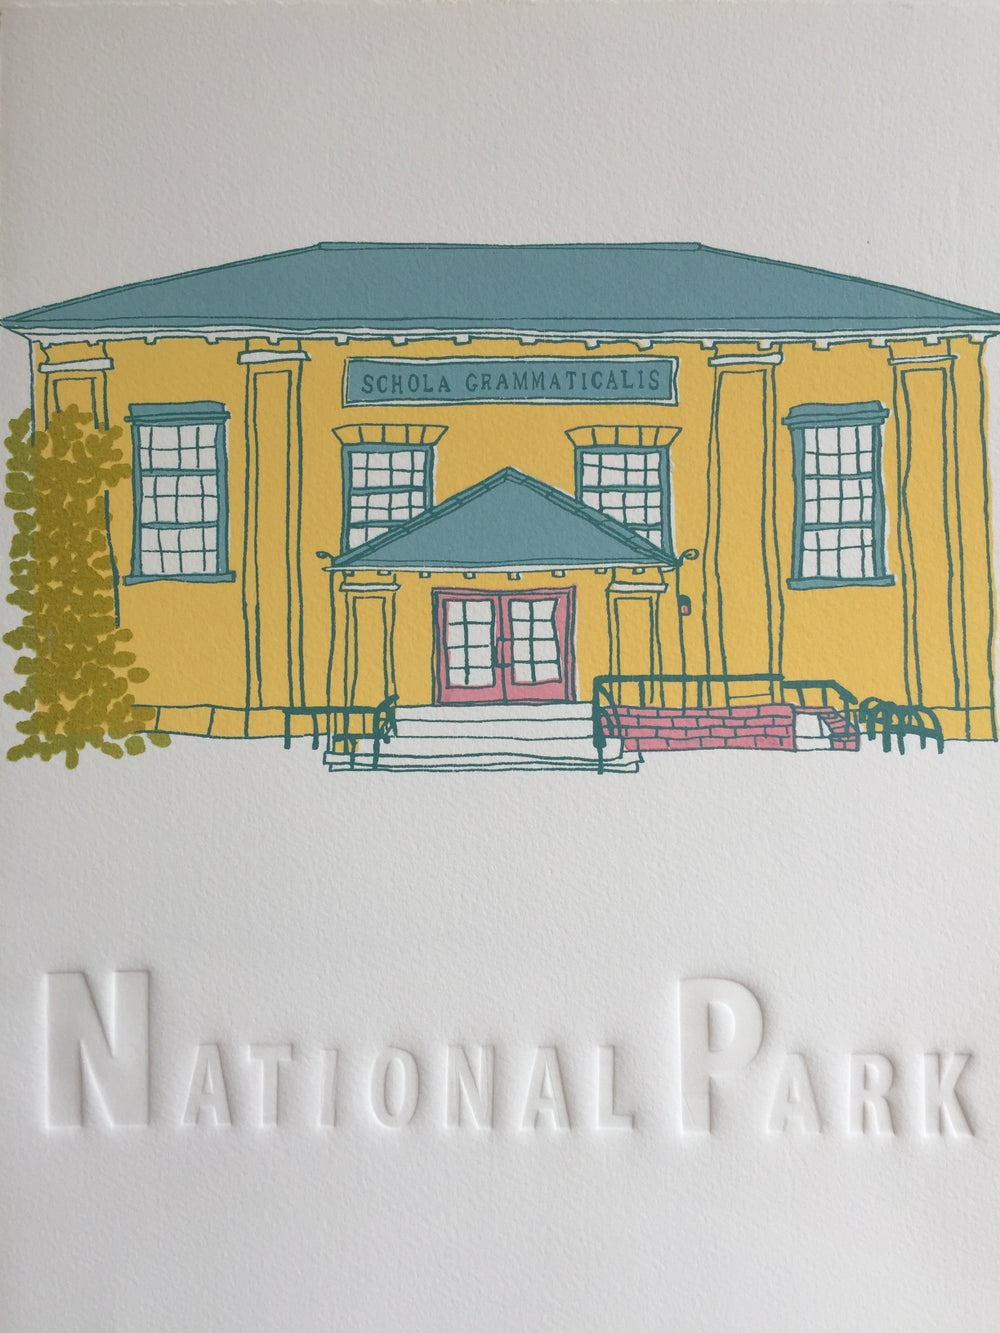 Image of N is for National Park